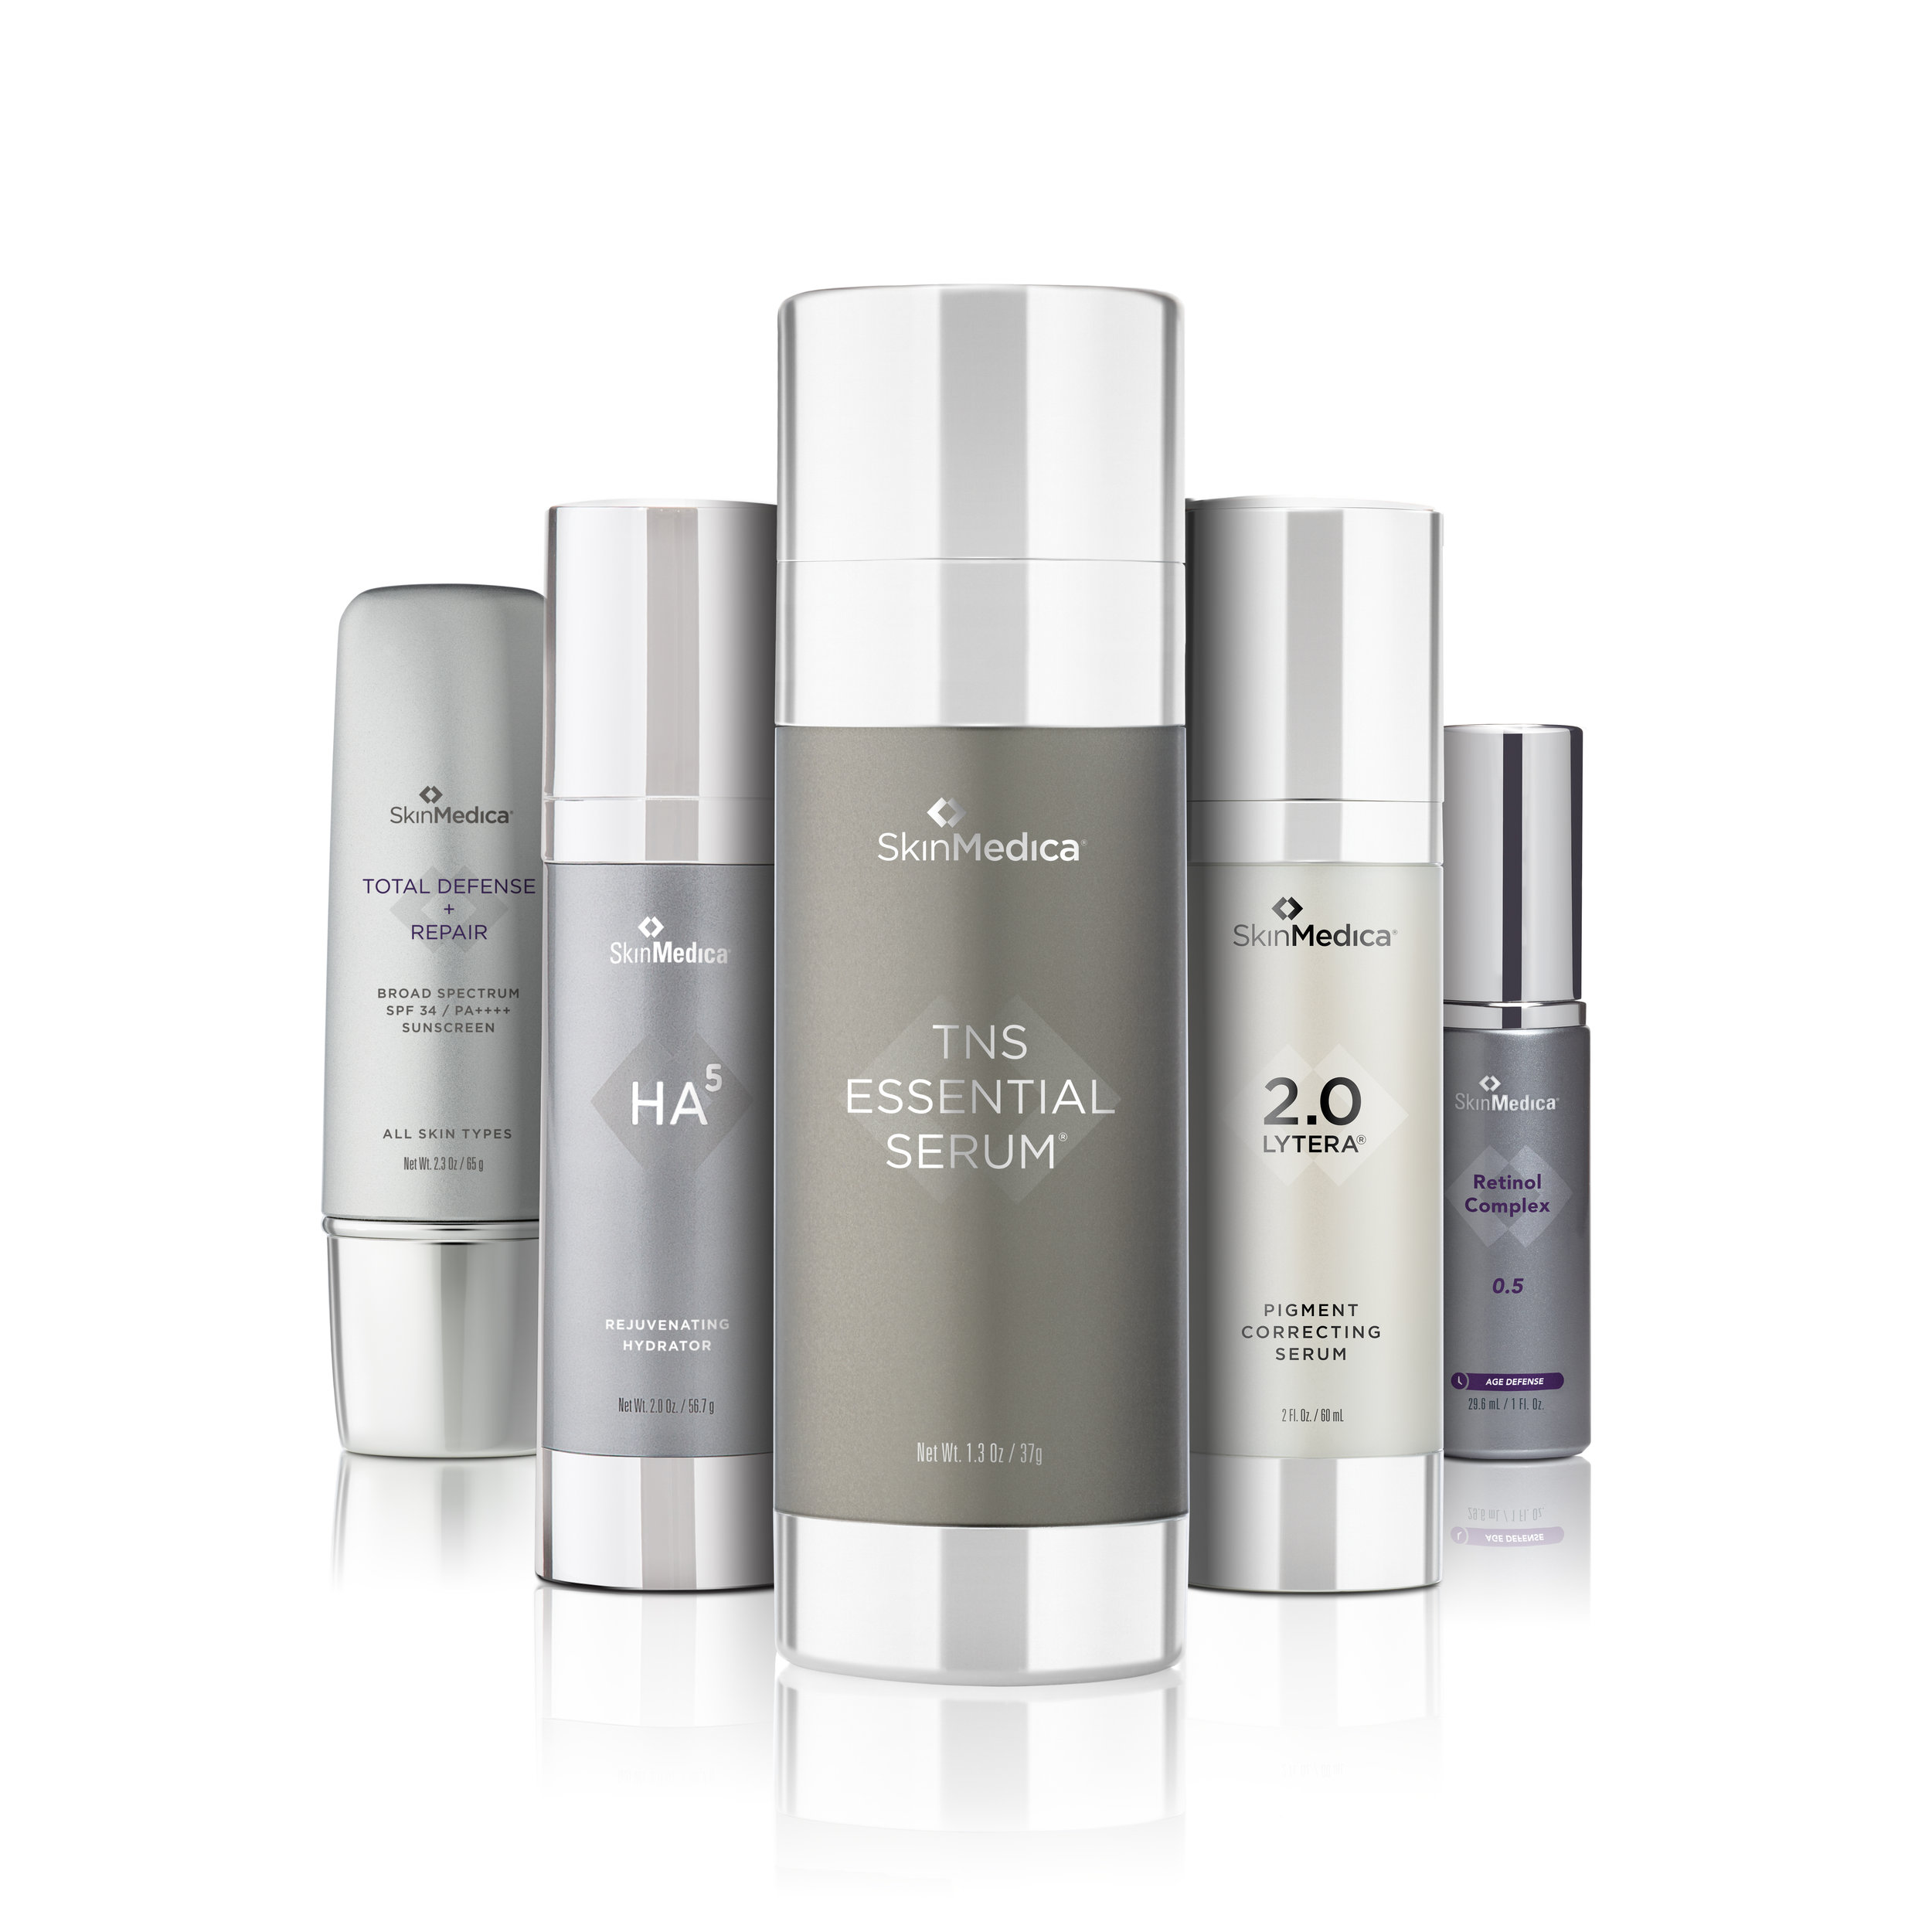 Skin Medica - Medical grade skin care for real results